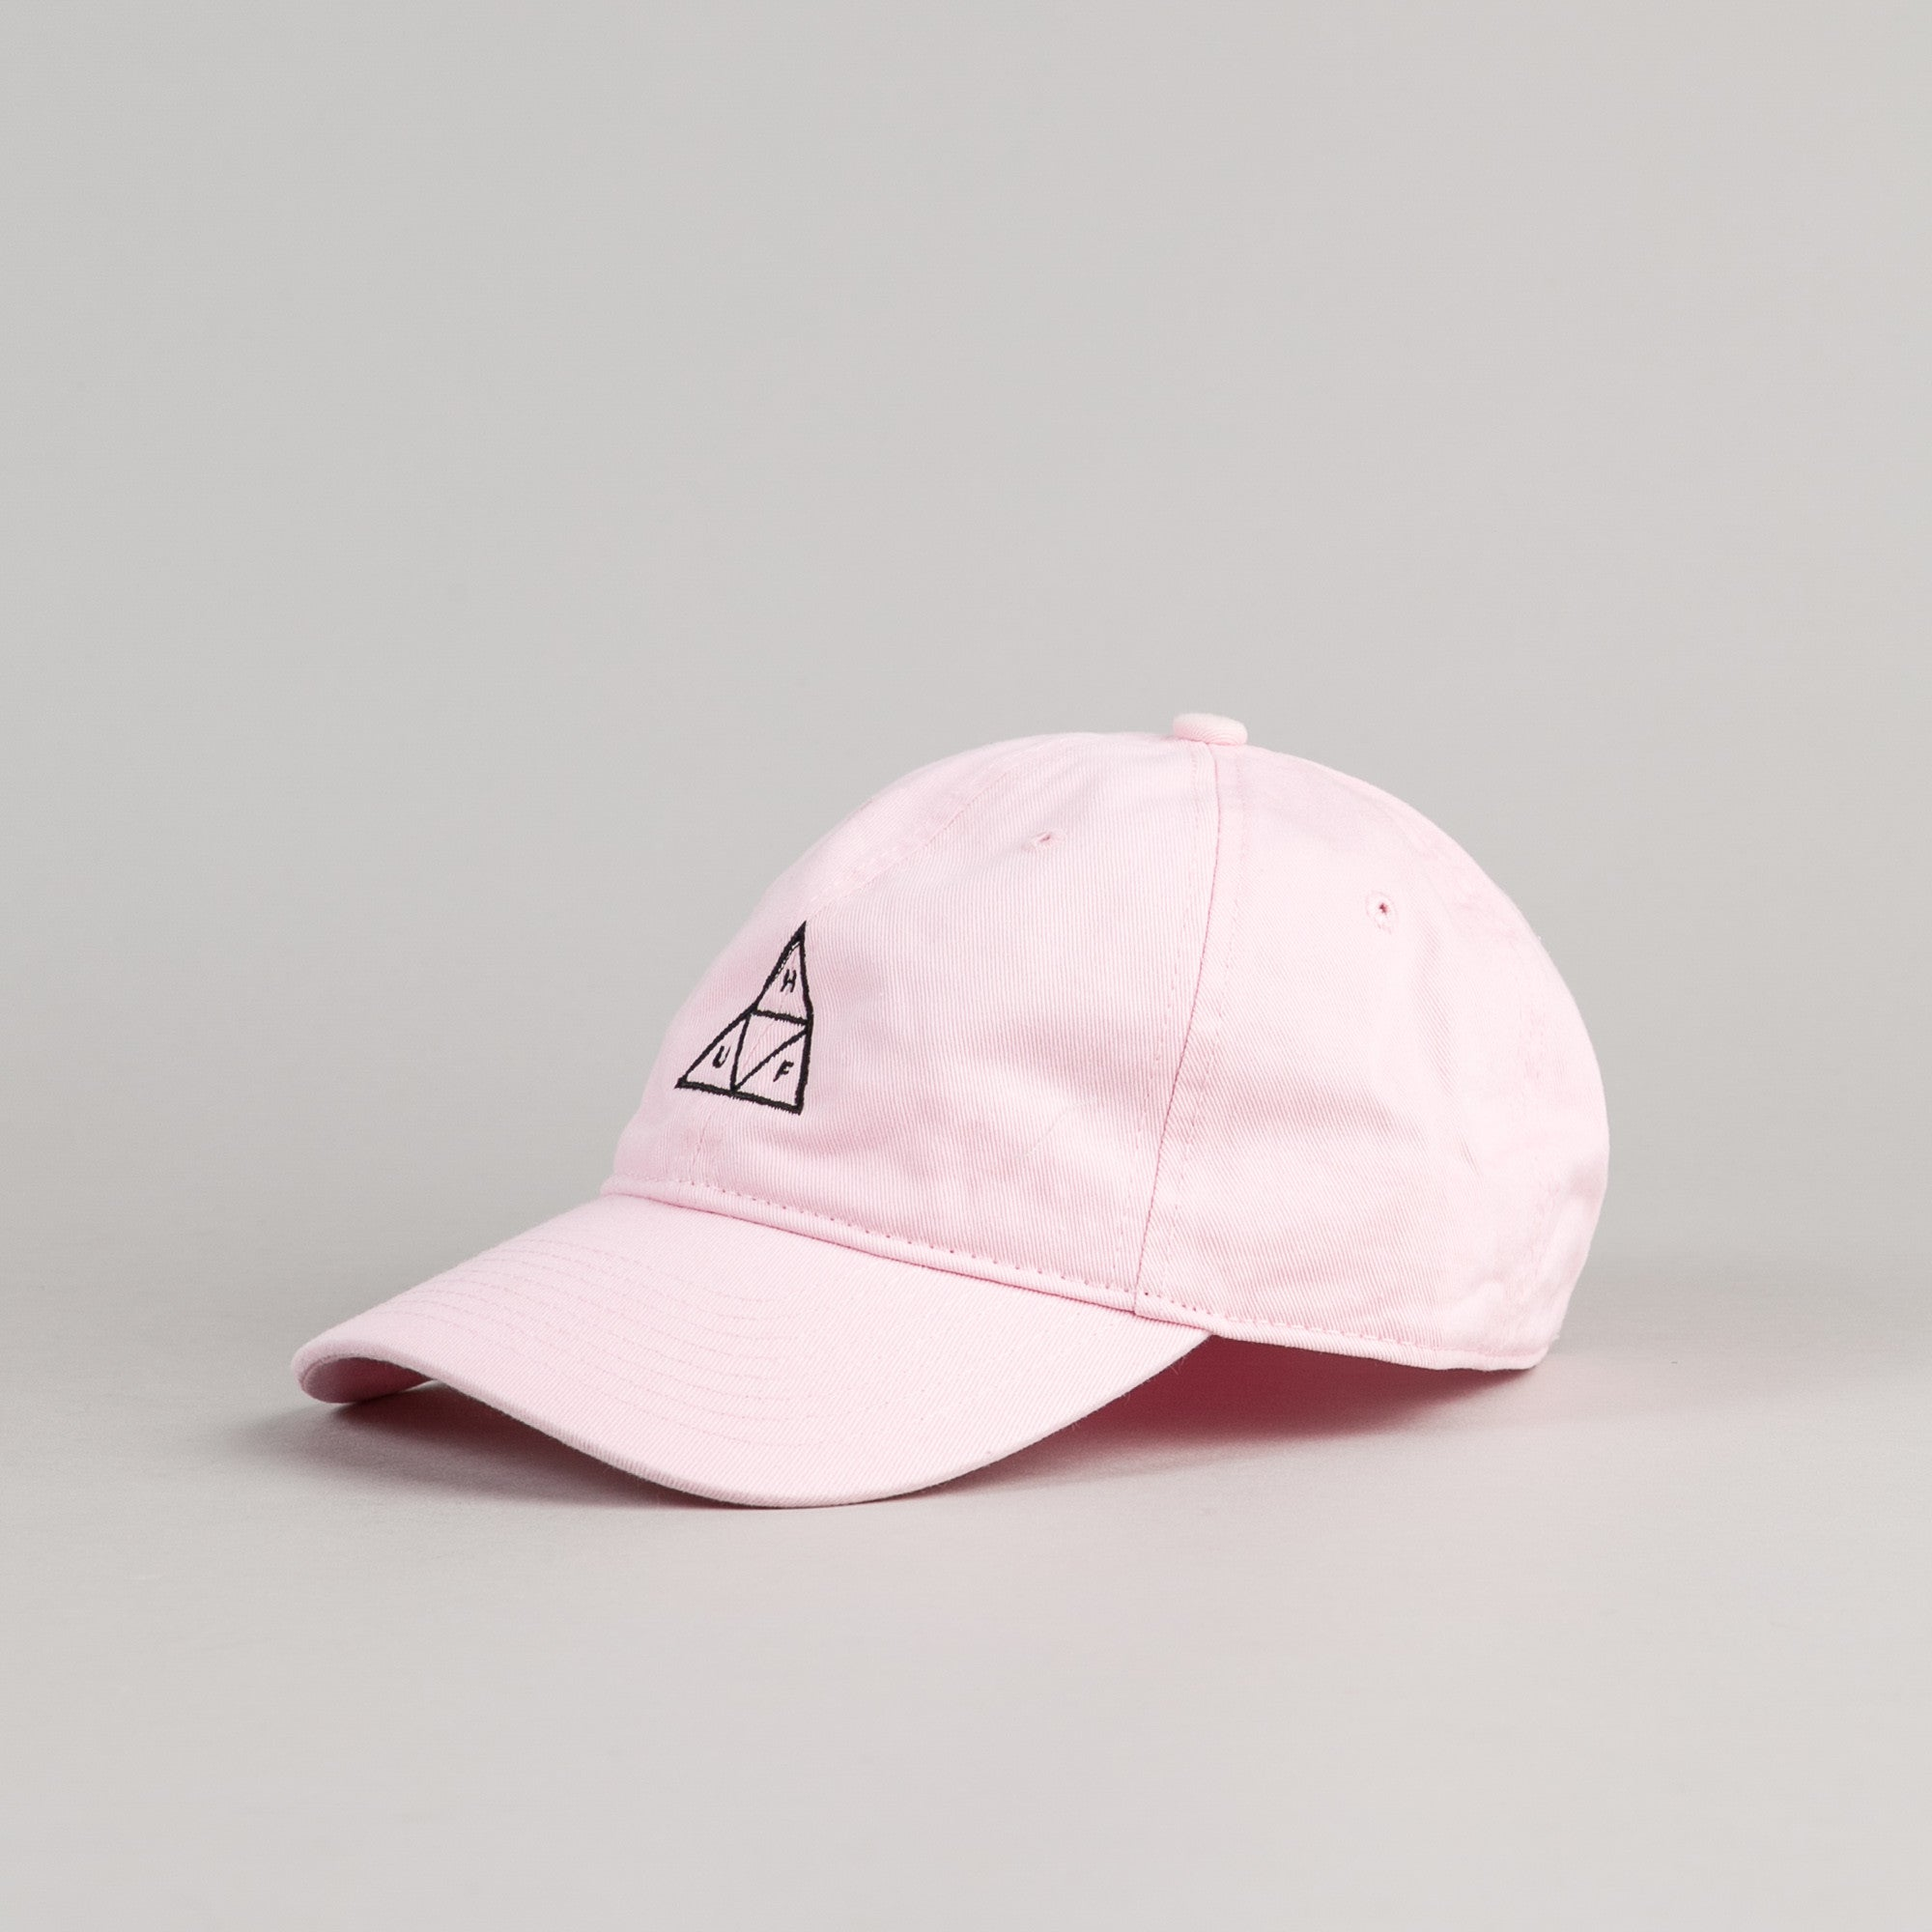 HUF Triple Triangle Dad Cap - Pink